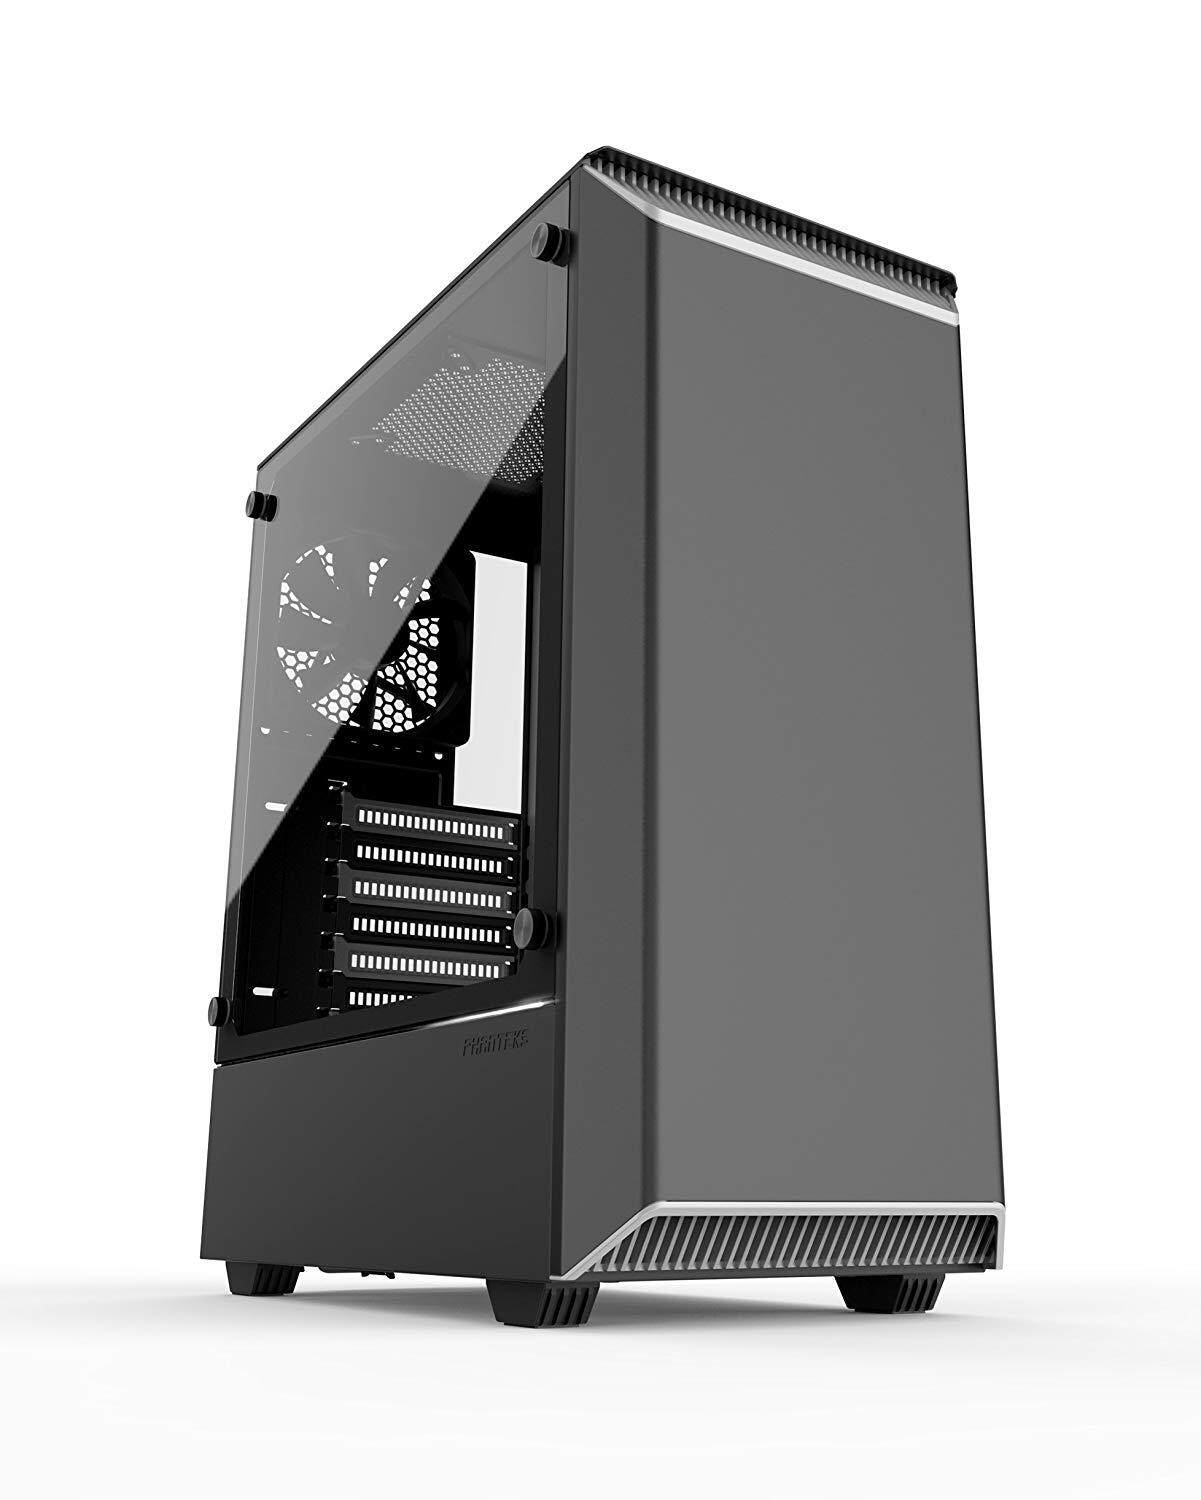 PHANTEKS ESCLIPSE P300 RGB TEMPERED GLASS BLACK/WHITE CHASSIS Malaysia